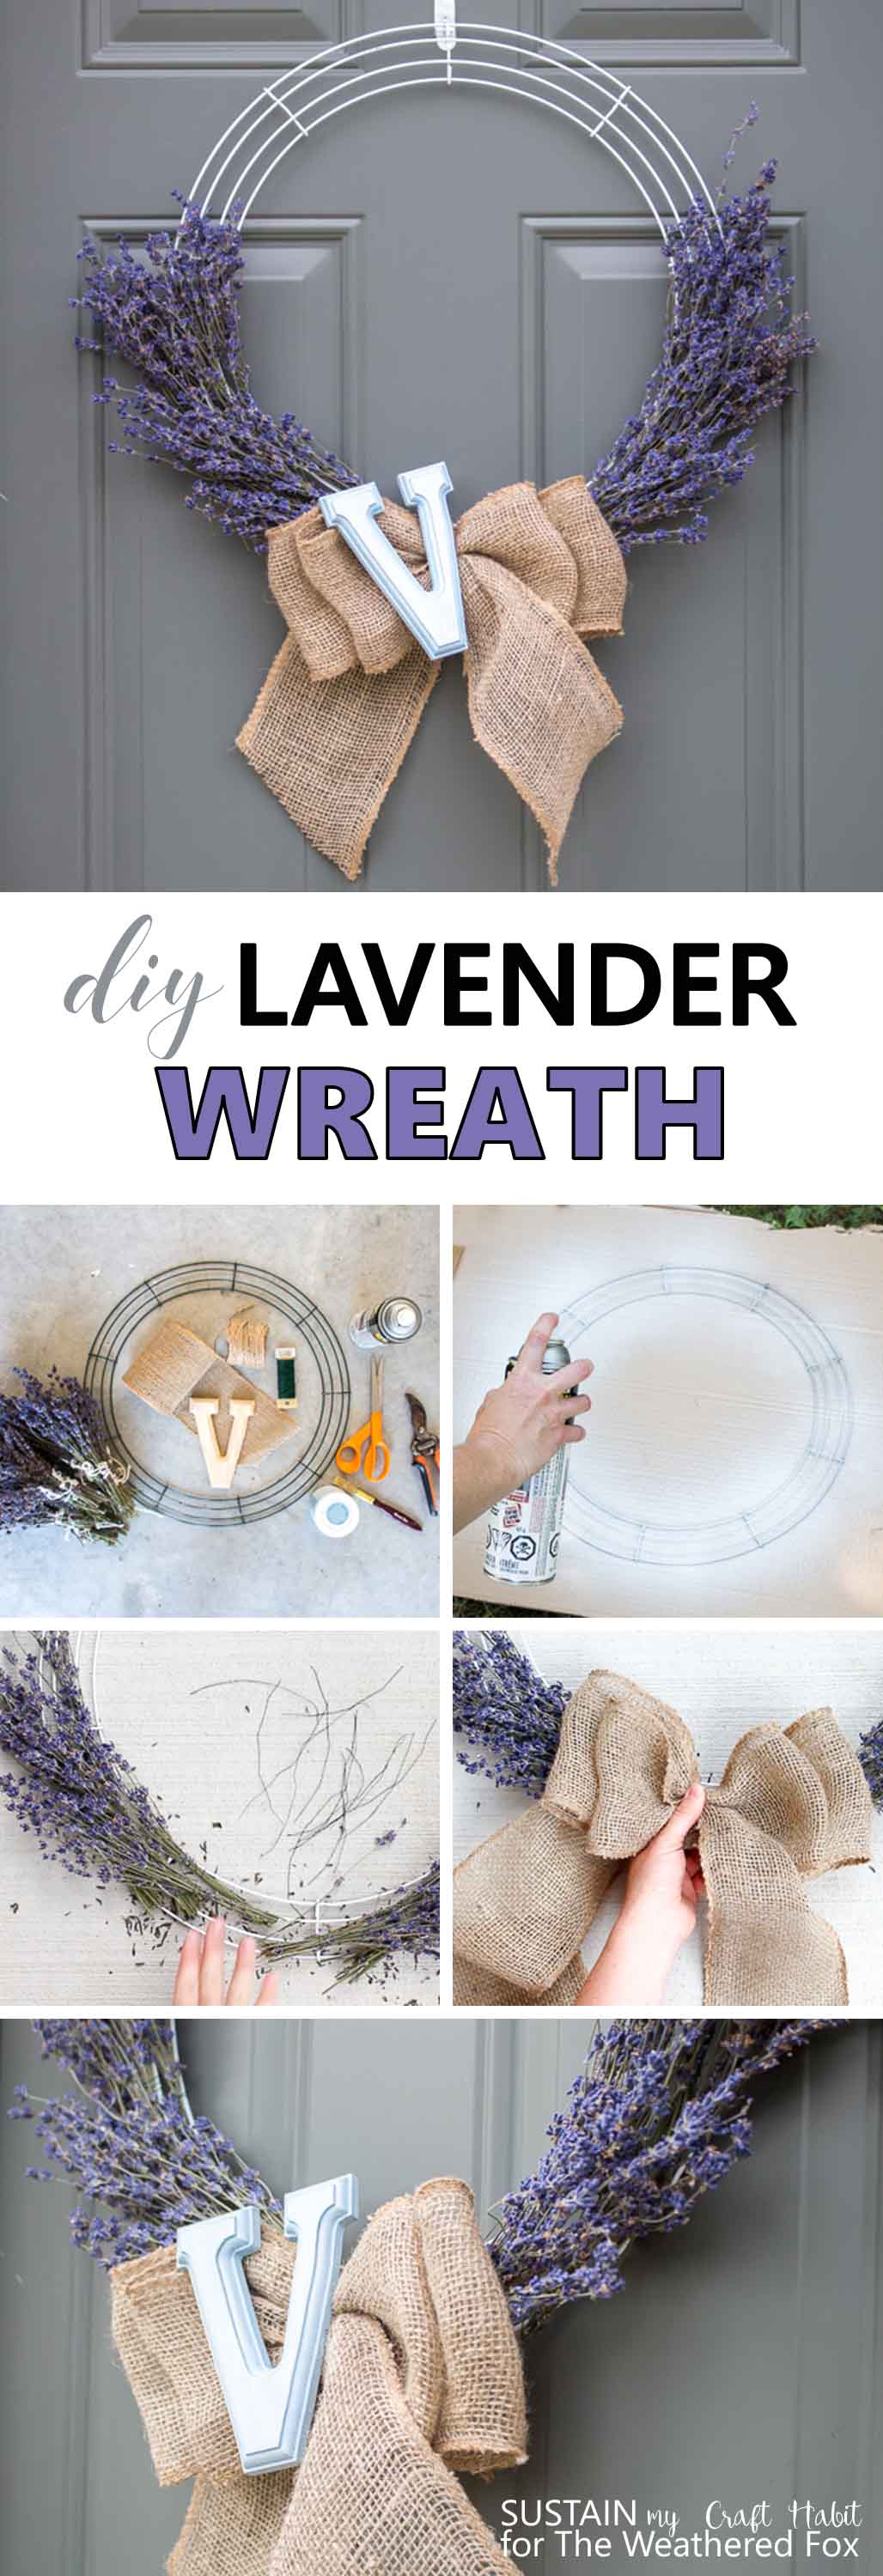 Learn how to make this simple farmhouse-inspired lavender wreath with a burlap bow and monogram letter! Full step-by-step tutorial is included.